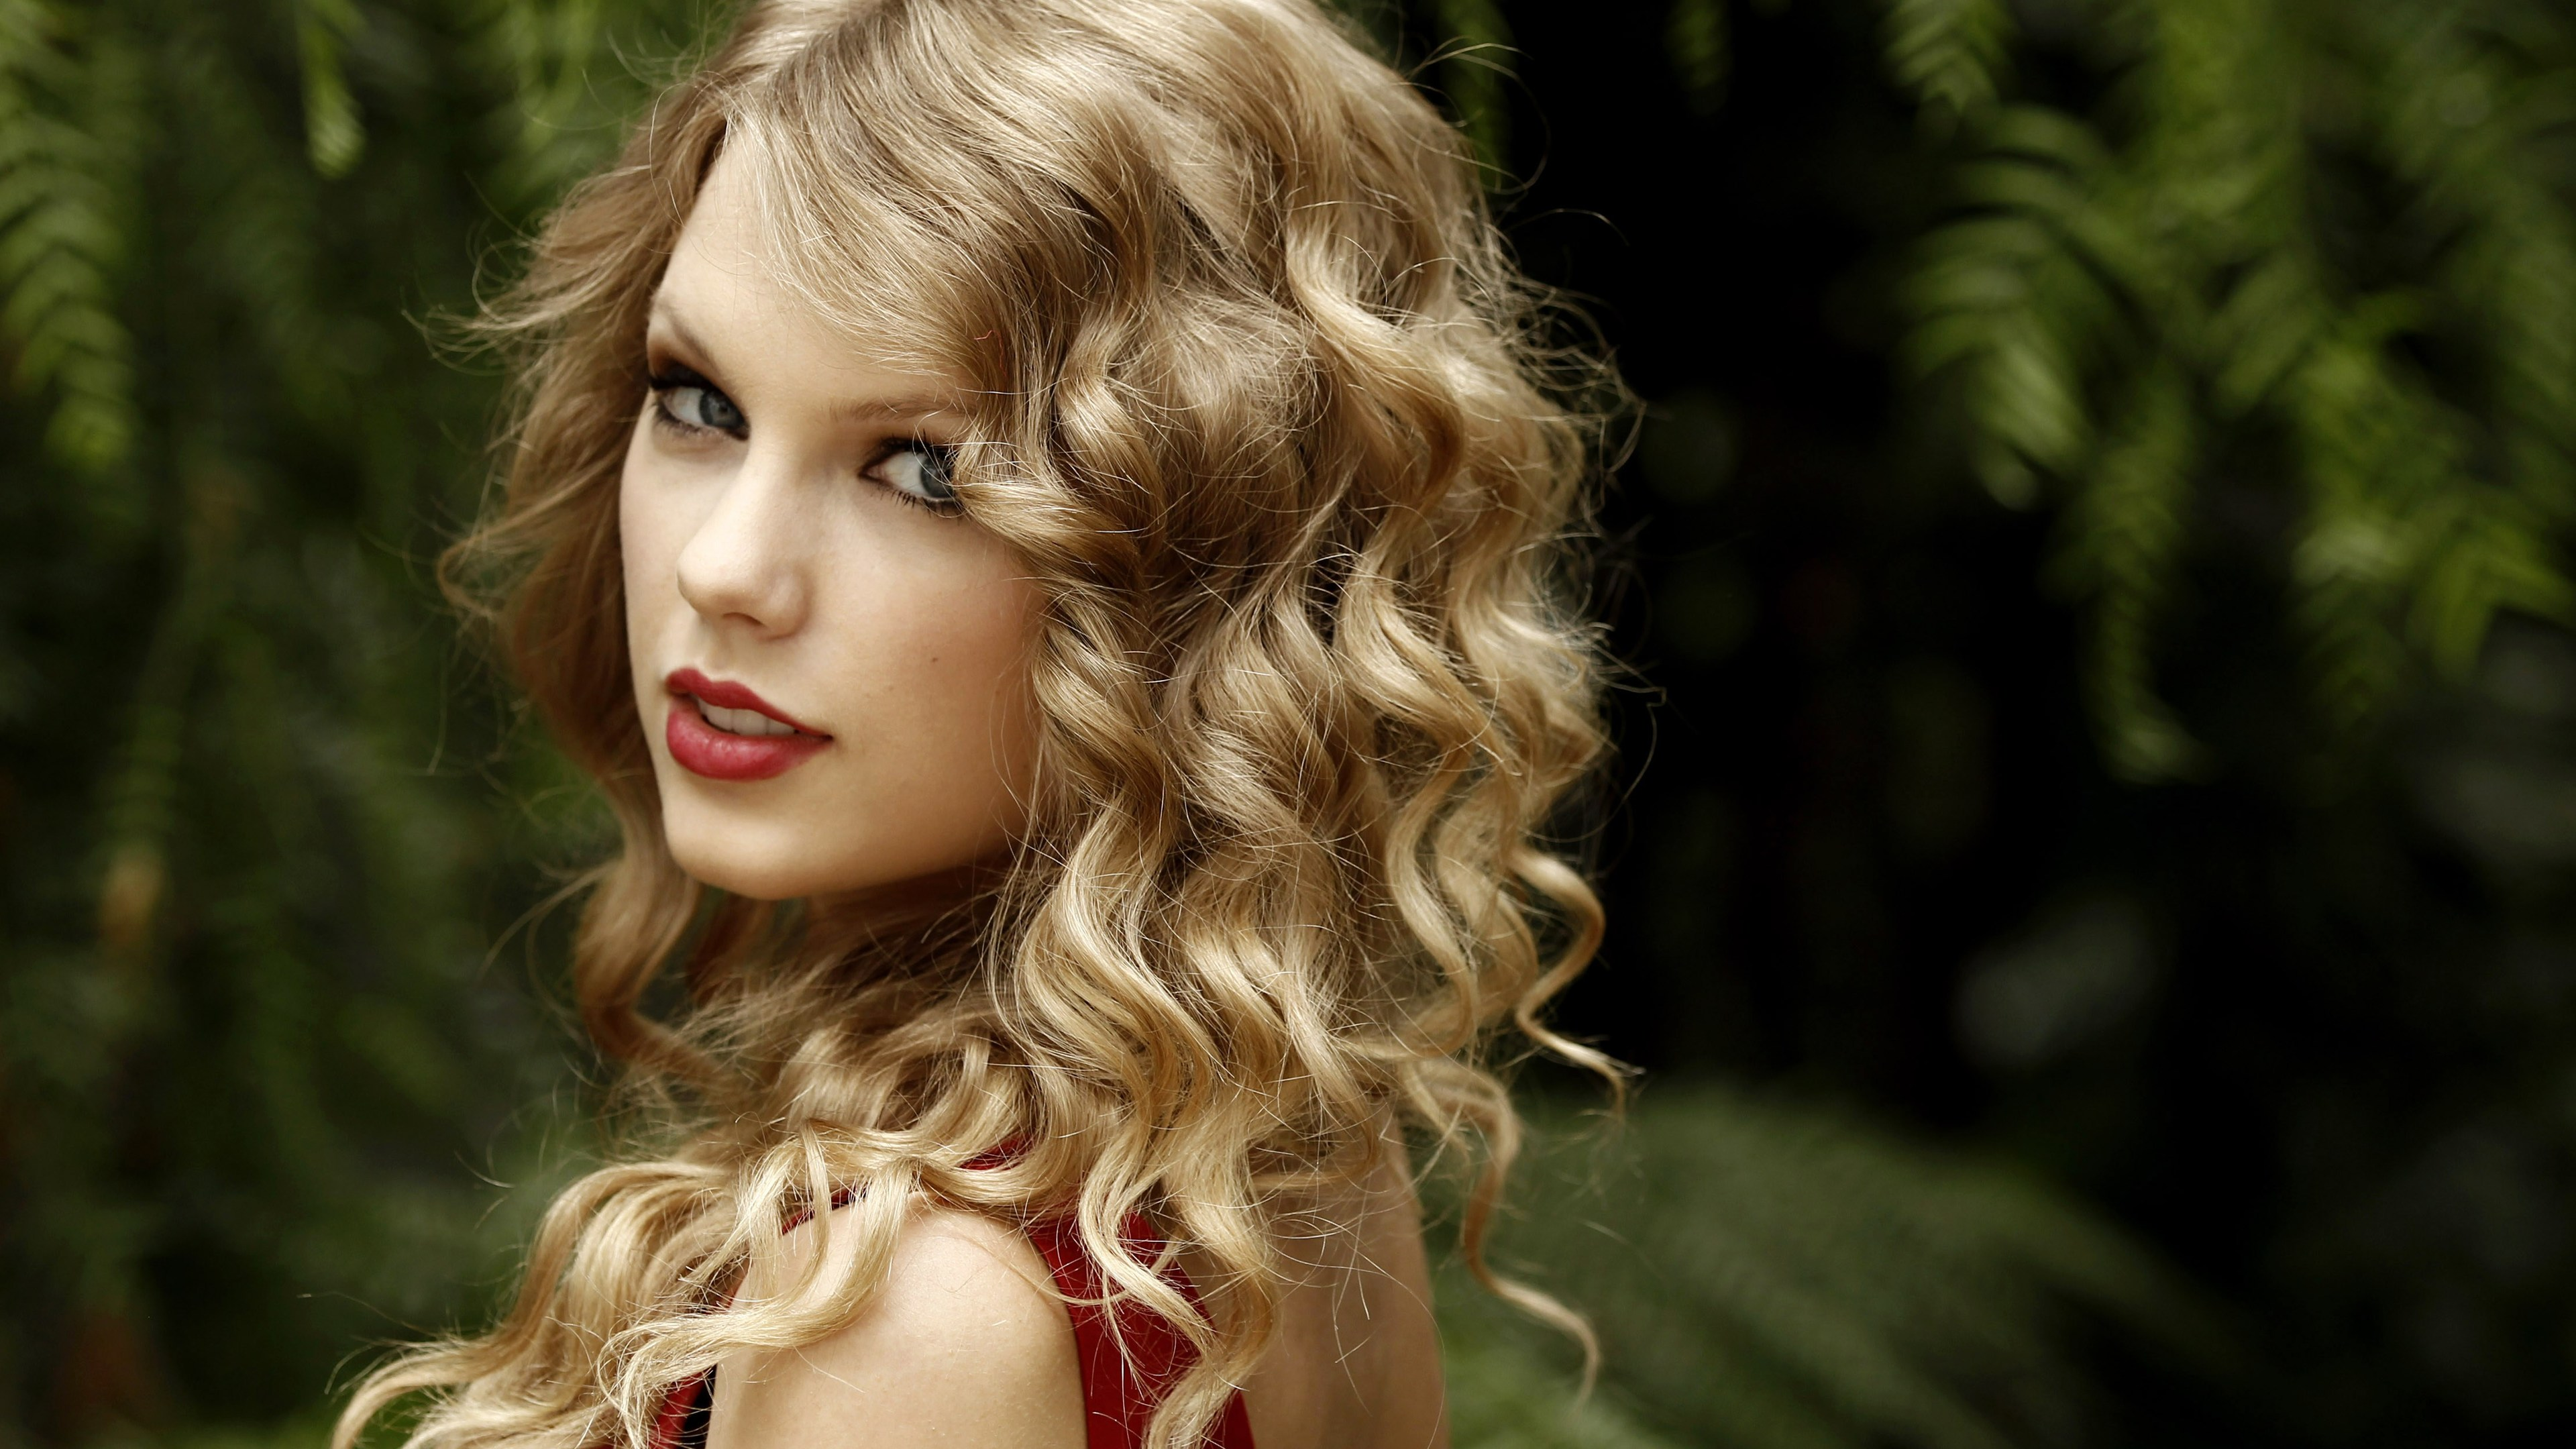 taylor swift 2019 4k 1553072973 - Taylor Swift 2019 4k - taylor swift wallpapers, singer wallpapers, music wallpapers, hd-wallpapers, celebrities wallpapers, 4k-wallpapers